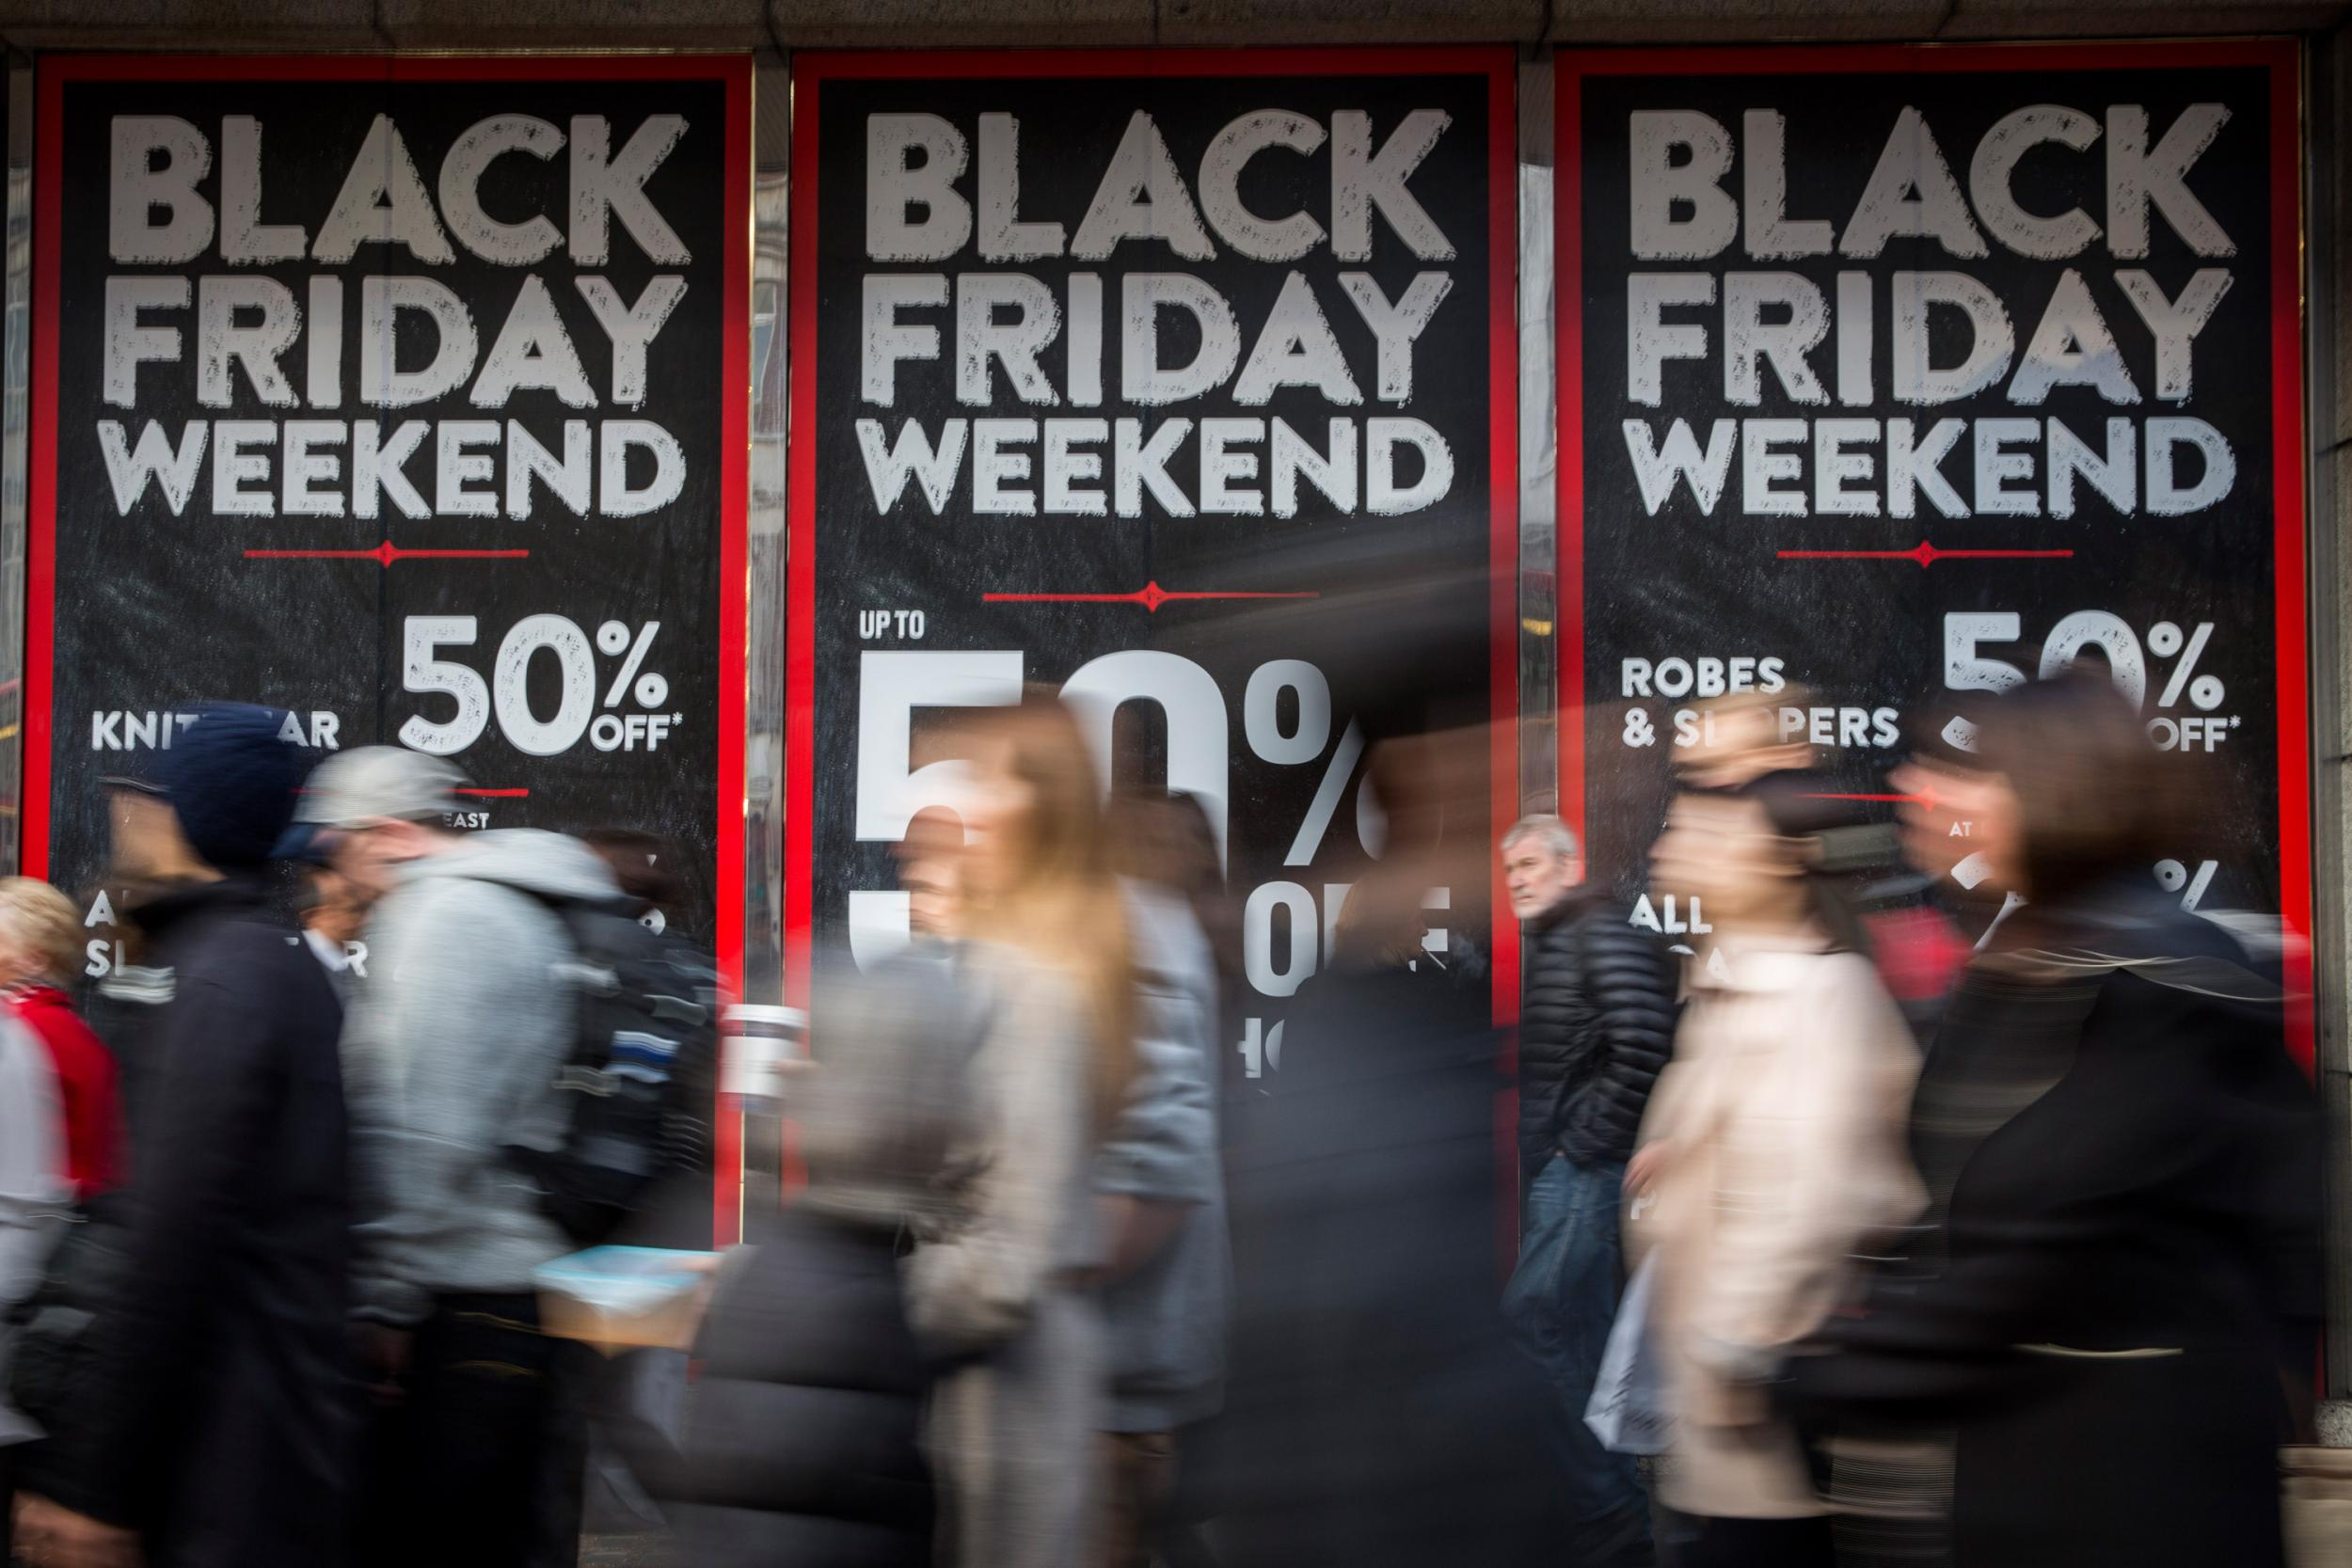 Black Friday Asda Latest Store To Scale Back On Massive Sales Day The Independent The Independent